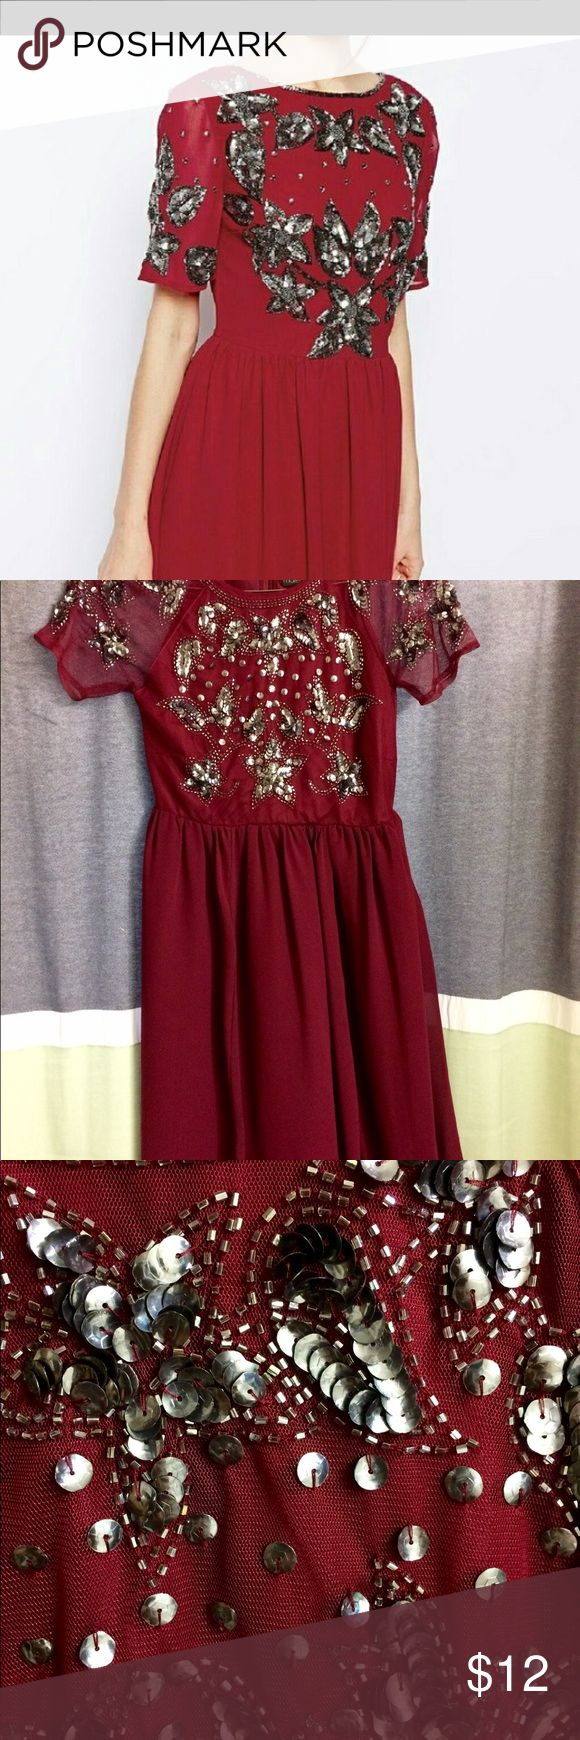 ASOS Sequin Dress Selling excellent condition flowy dress. Size 2 It is maternity  dress but can be worn as a regular dress. Beautiful beading details. Comes from pet snd smoke free home. No beads missing. Dress is knee length depending on height ASOS Dresses Midi